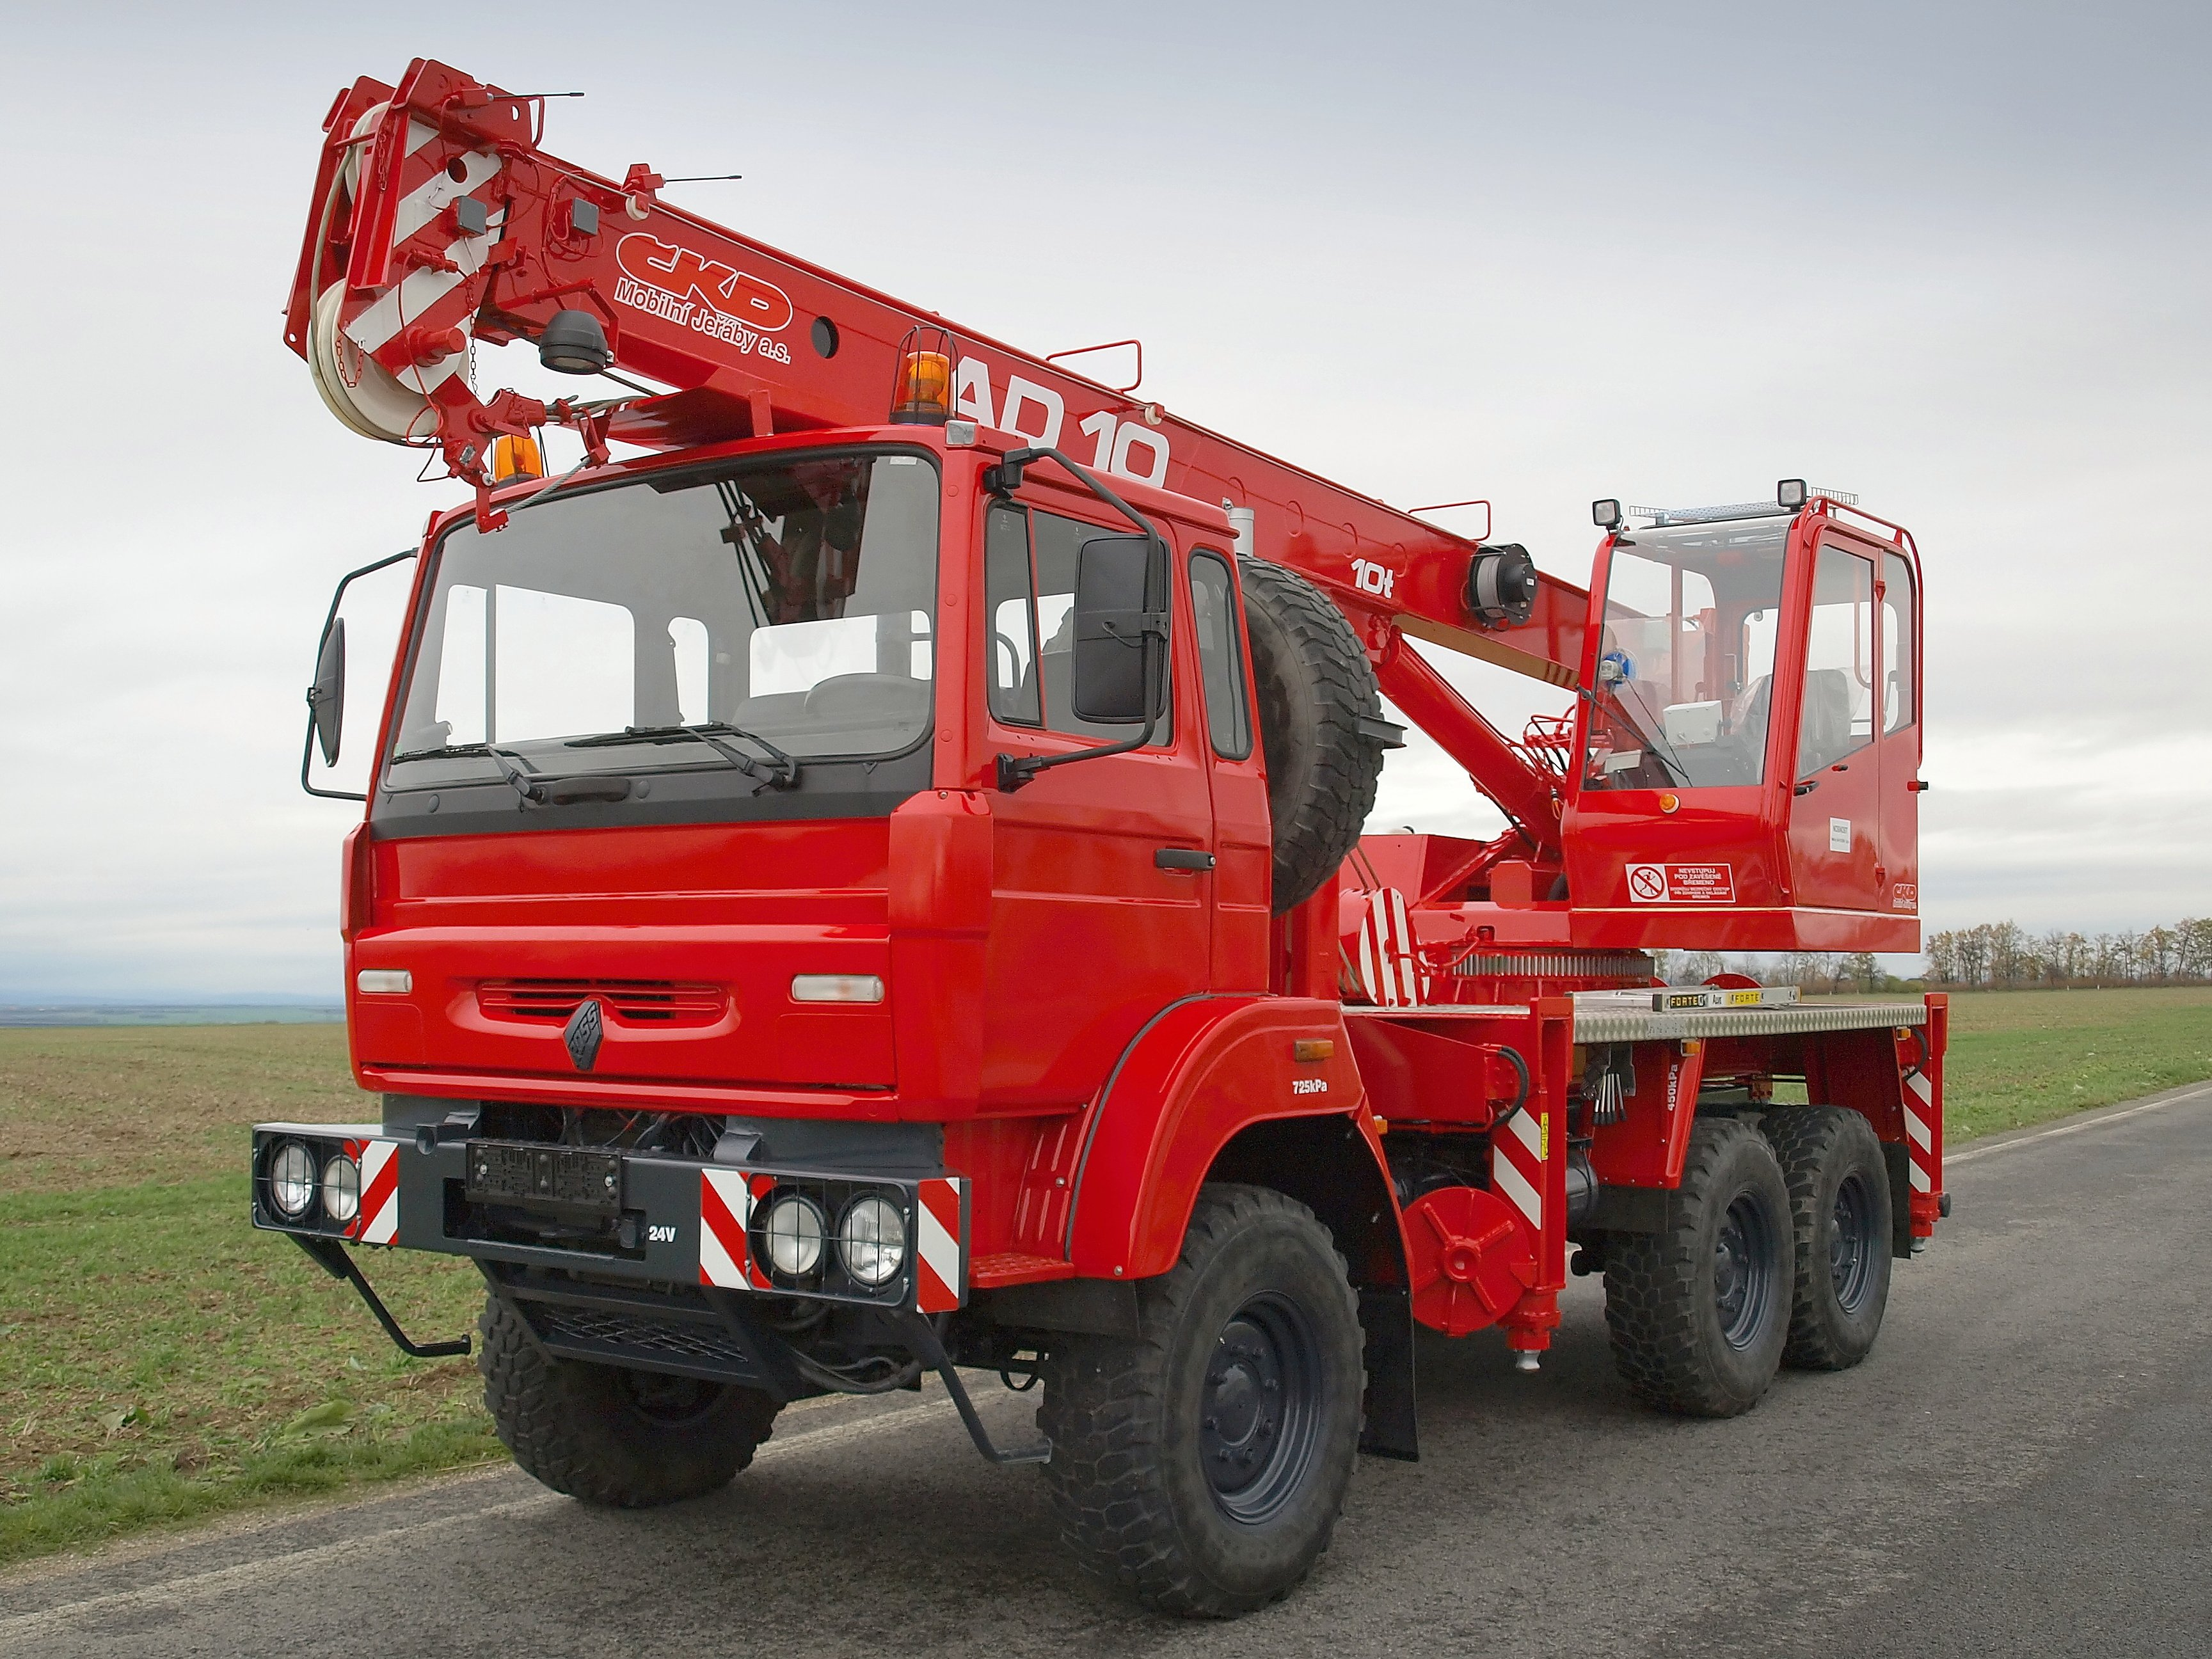 New crane - AD10 on chassis ROSS/Renault